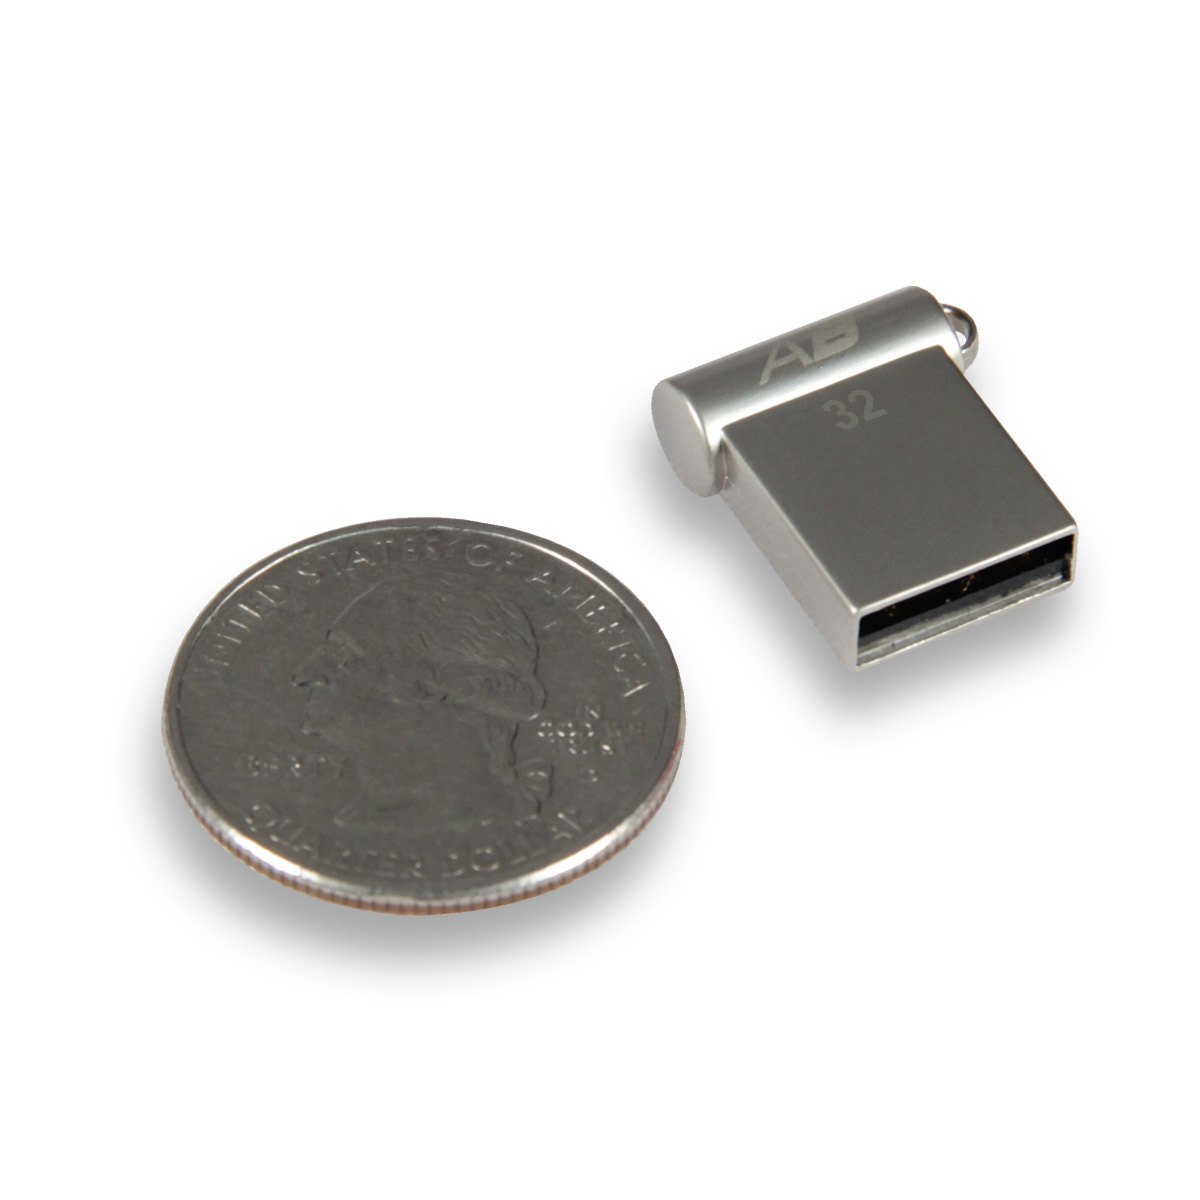 flash-usb 2гб lg silver: